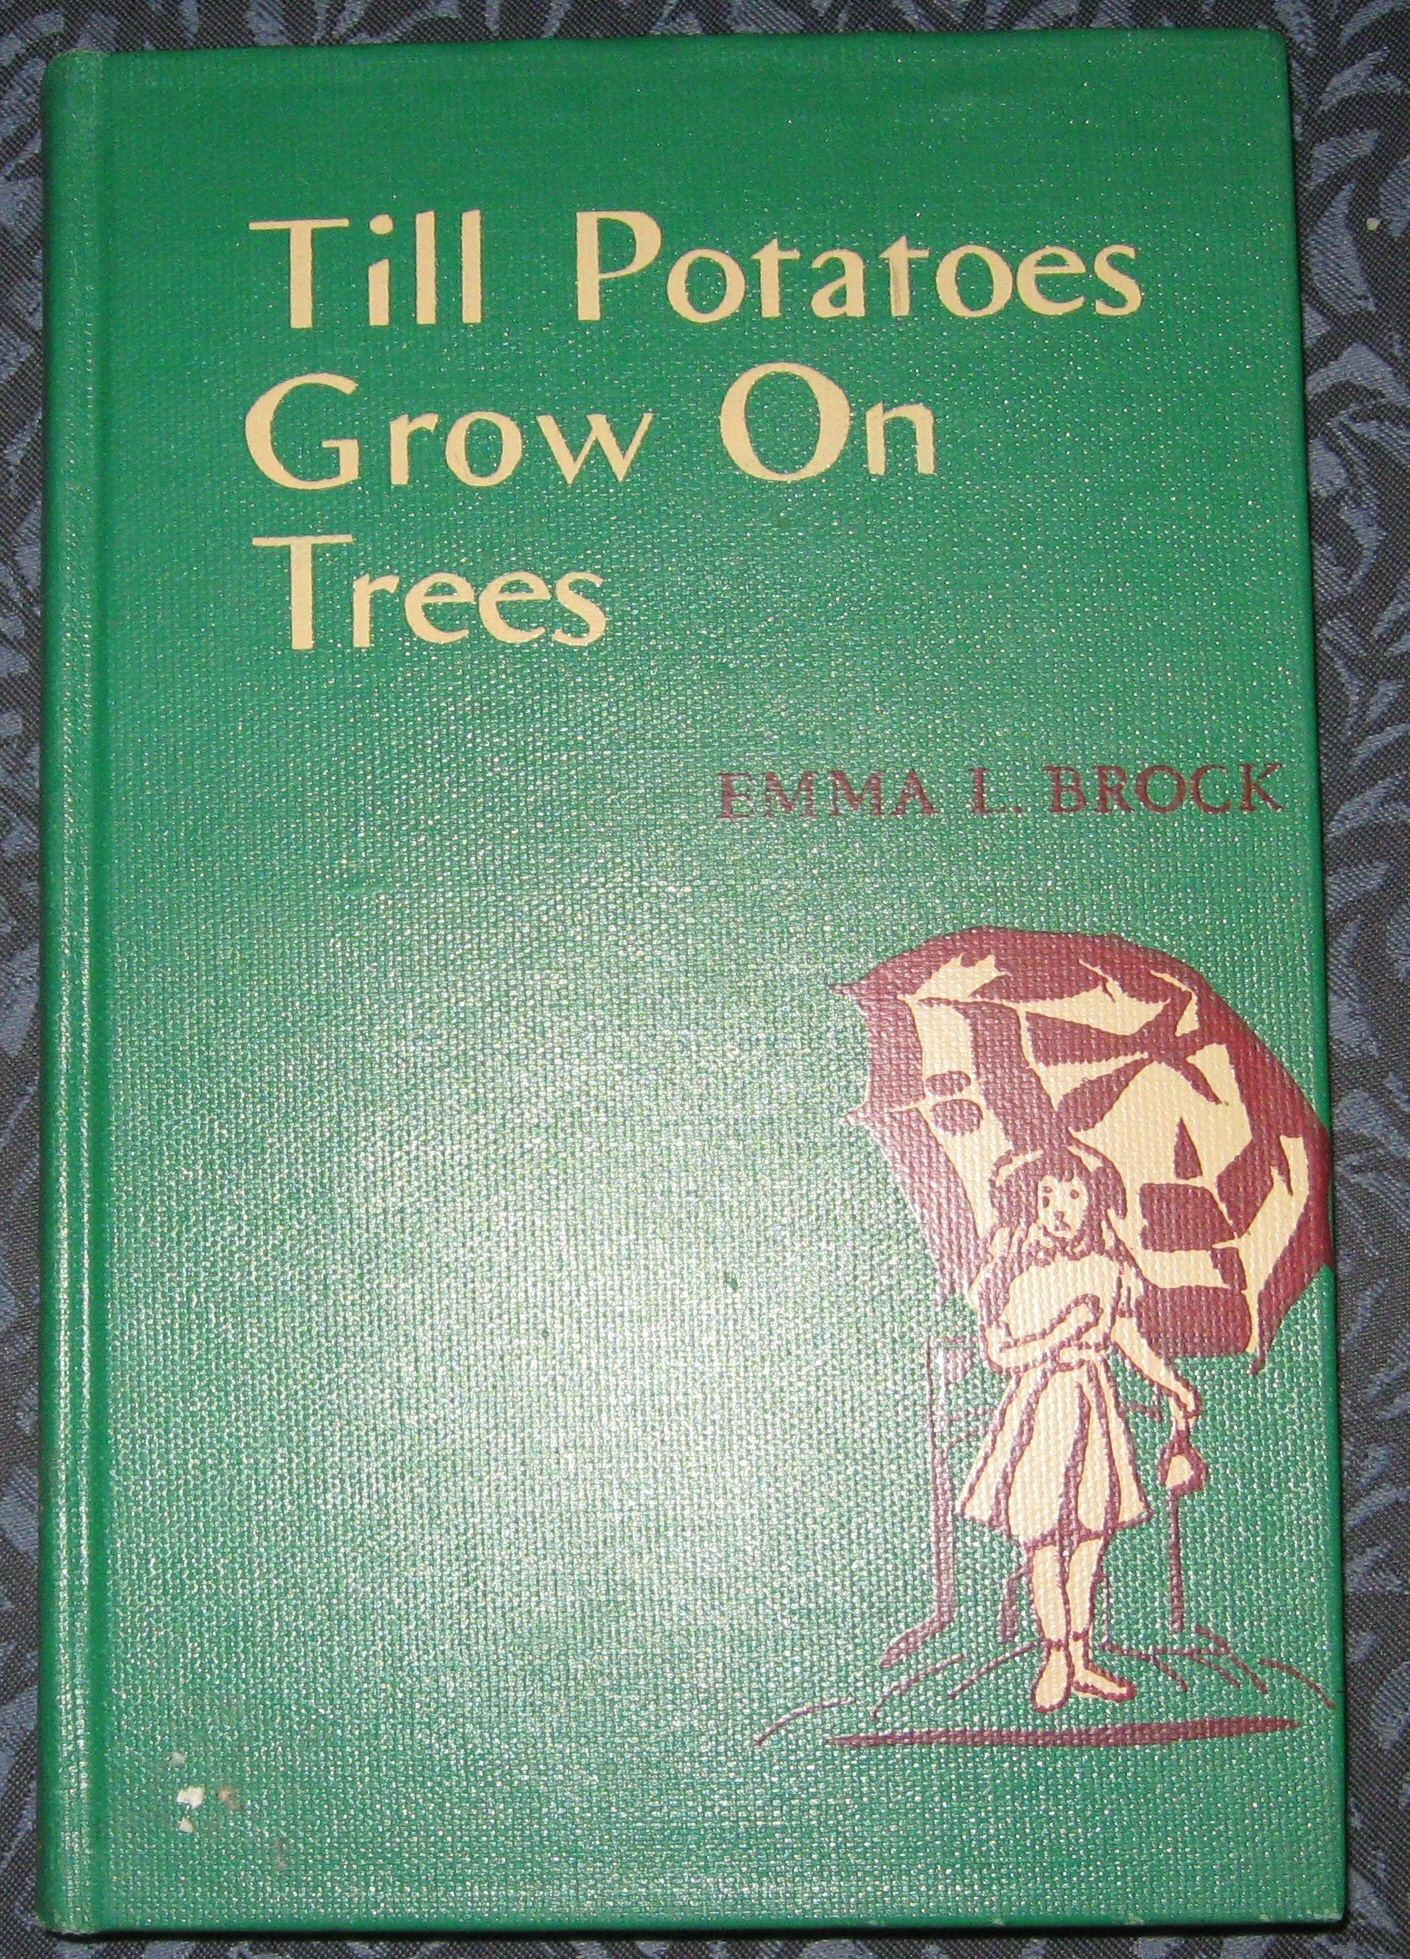 TILL POTATOES GROW ON TREES, Brock, Emma L.